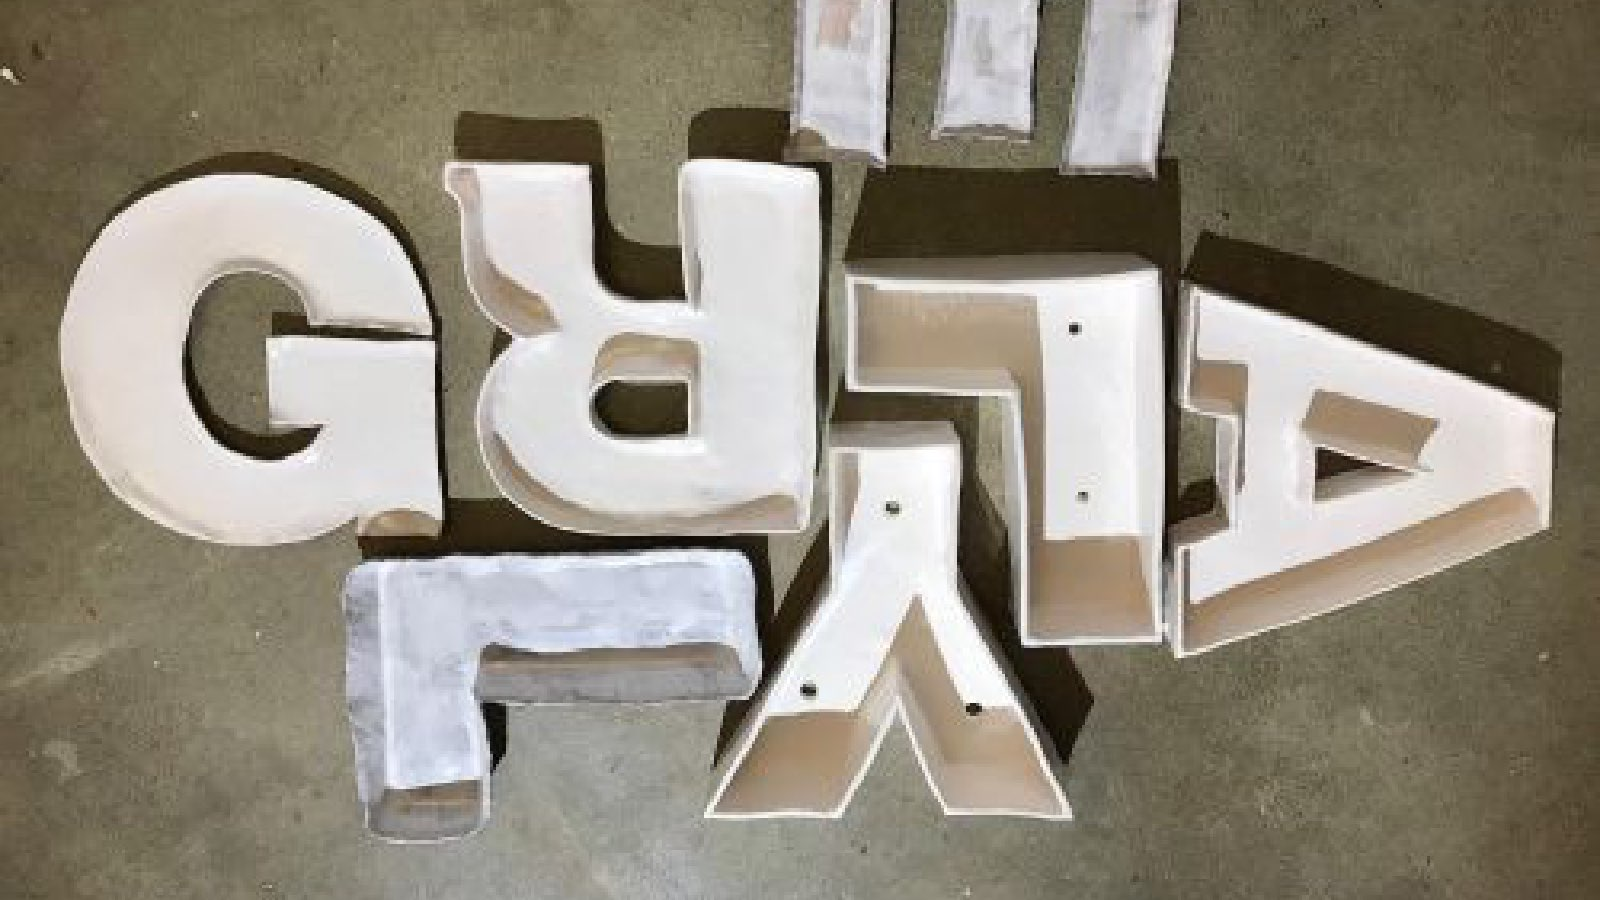 graphic display of 3d letters